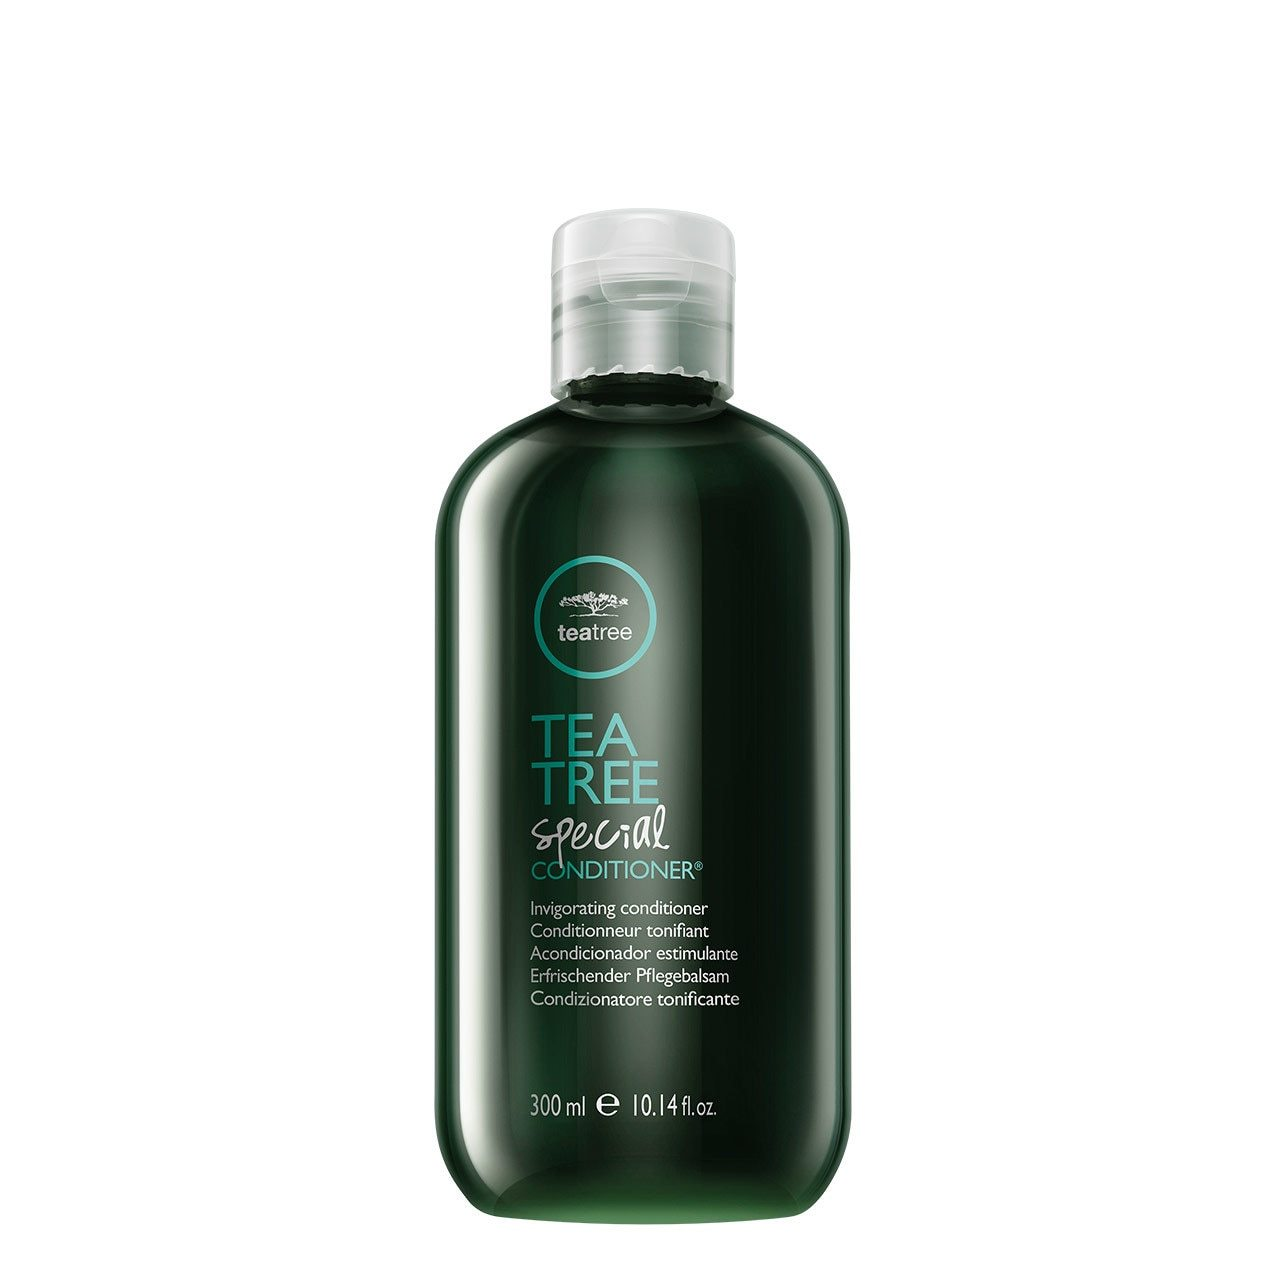 Paul Mitchell Tea Tree Special Conditioner 10.14 oz